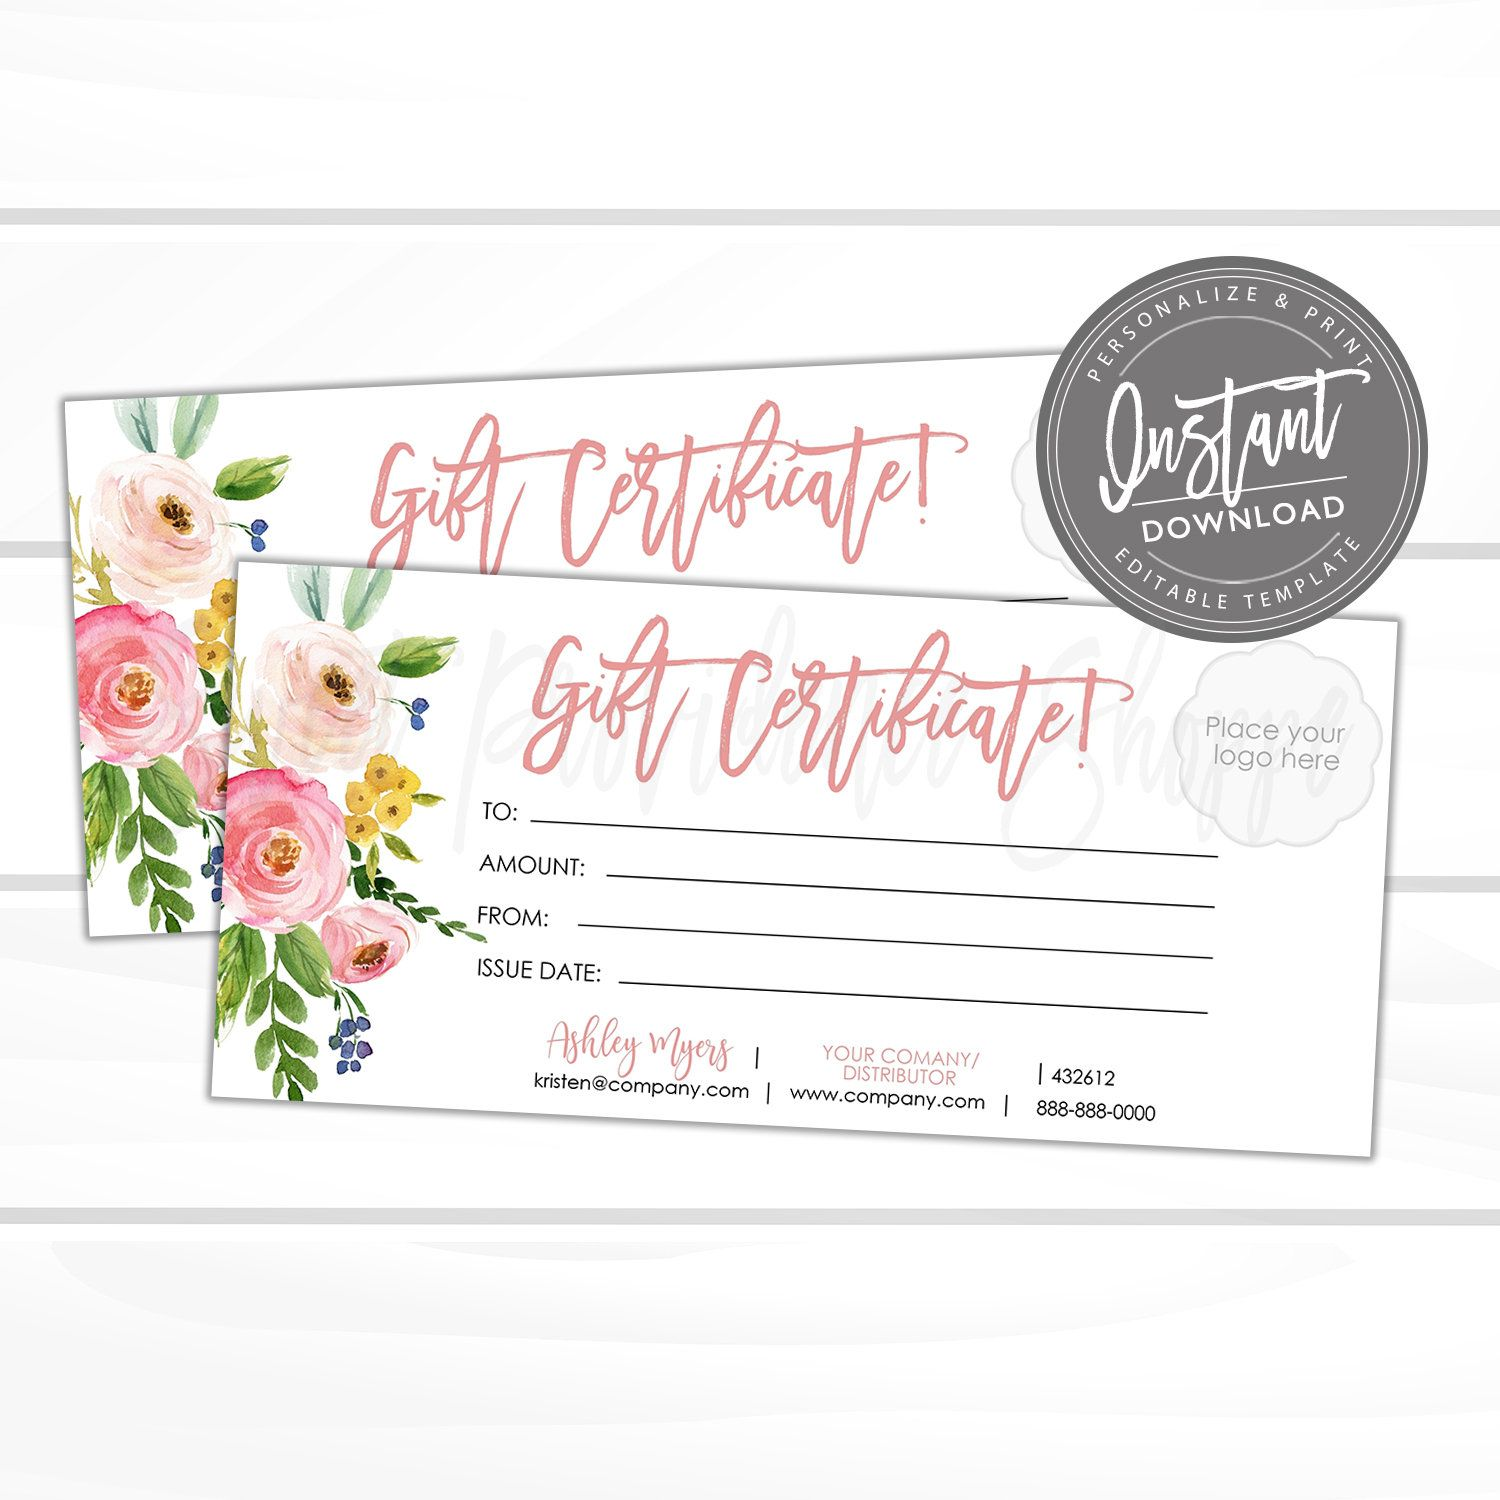 Editable Gift Certificate Printable Floral Gift Voucher Etsy Printable Gift Certificate Gift Certificate Template Printable Gift